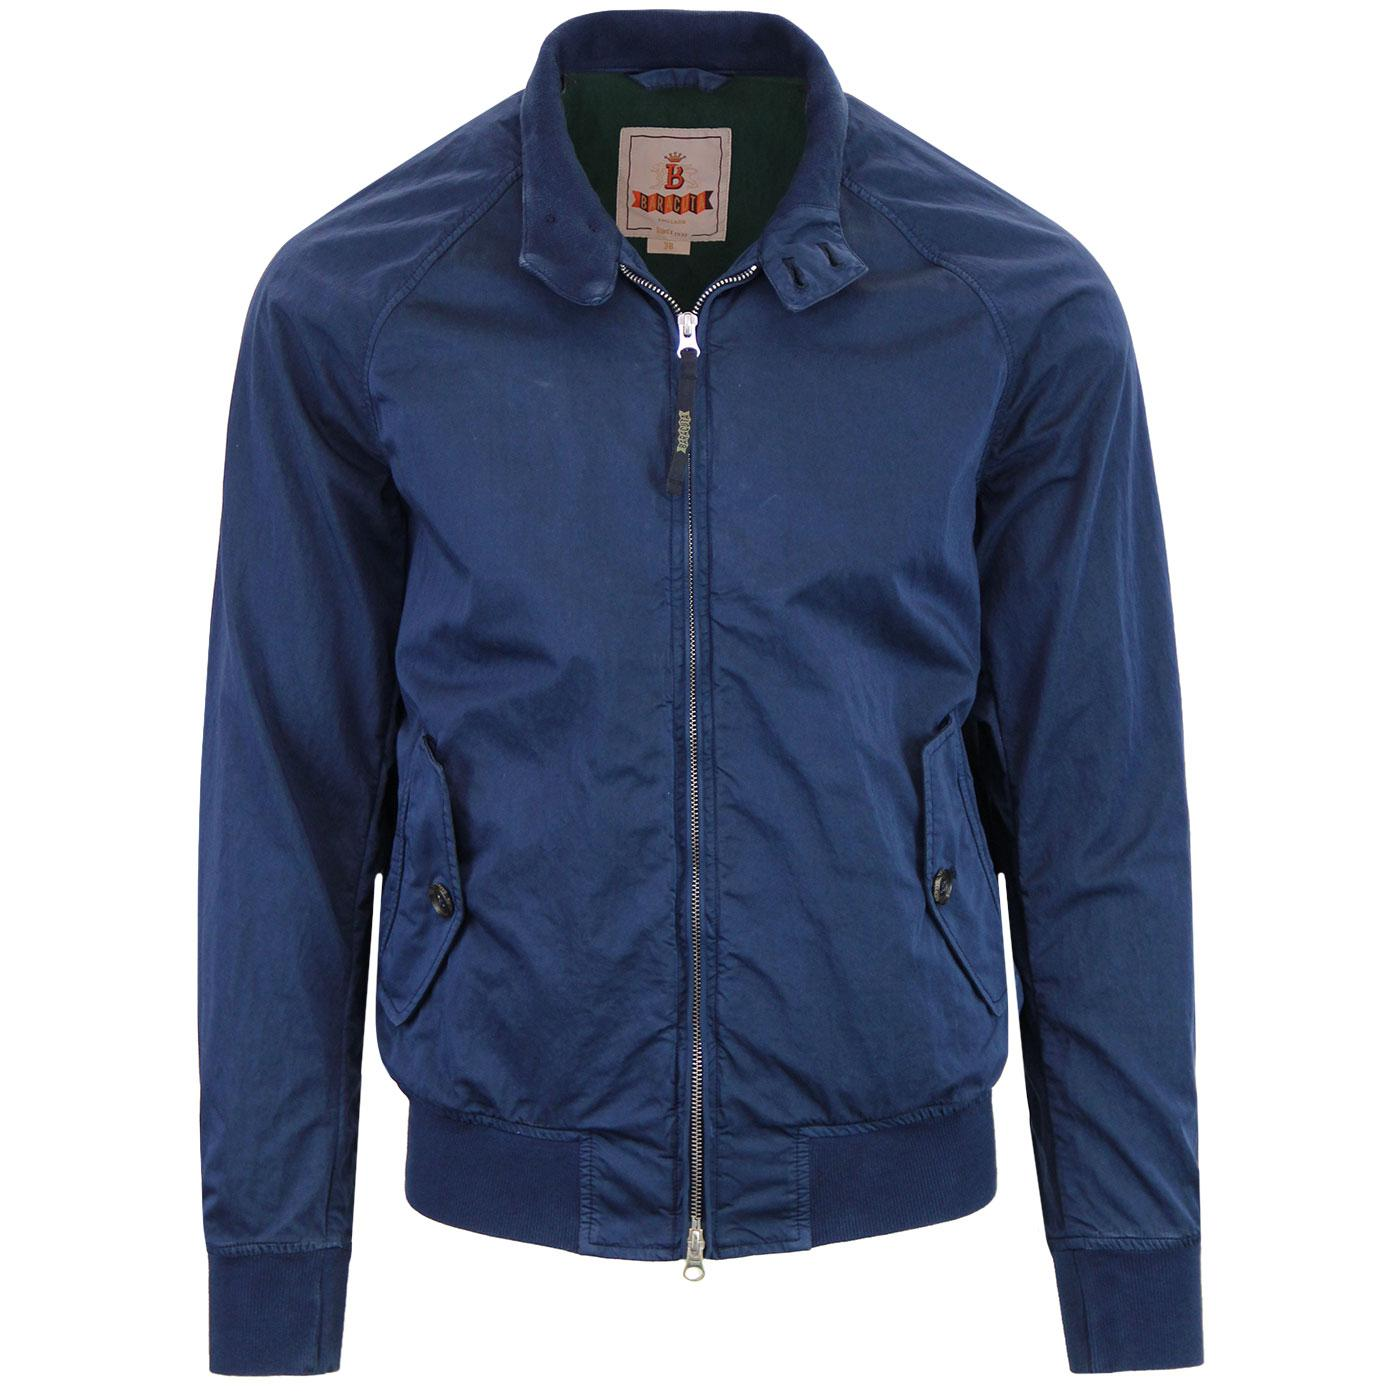 BARACUTA G9 Authentic Fit Sateen Harrington Jacket